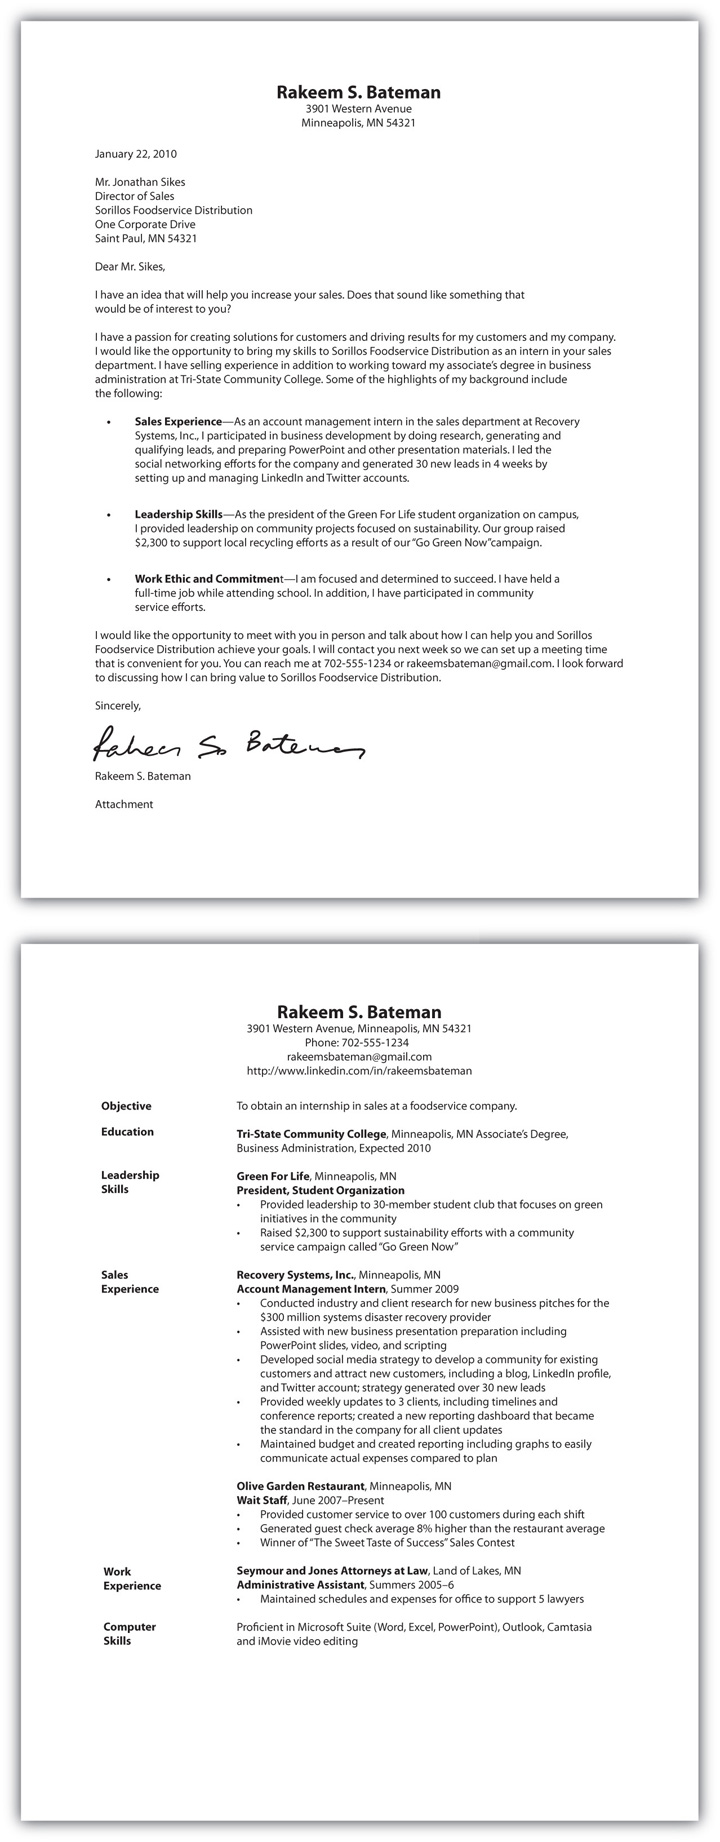 selling résumé and cover letter essentials resume examples sample for sanitation worker Resume Cover Letter And Resume Examples